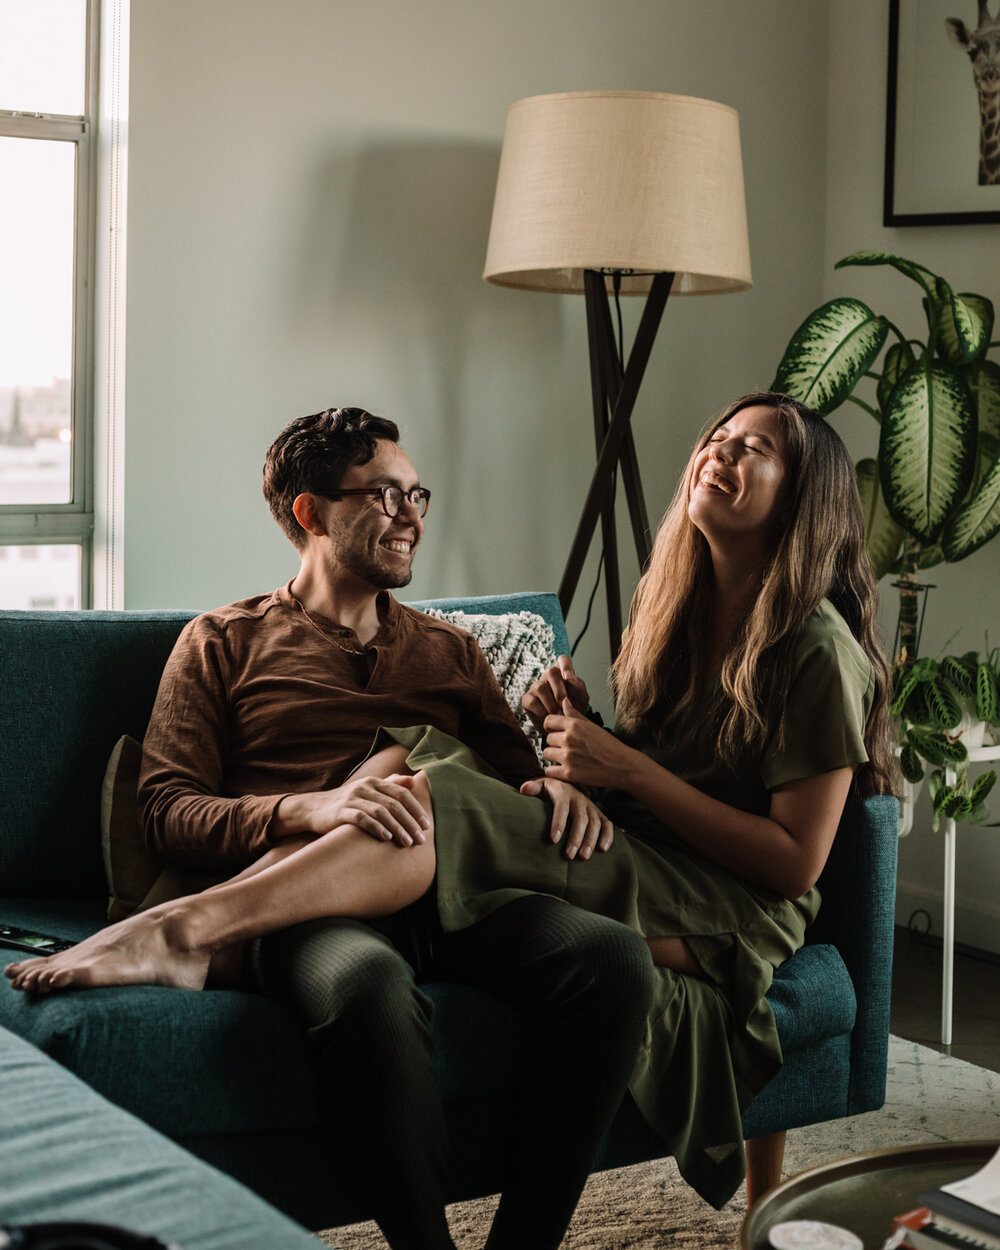 Rachel Off Duty: Man and Woman Talking and Sitting on a Couch